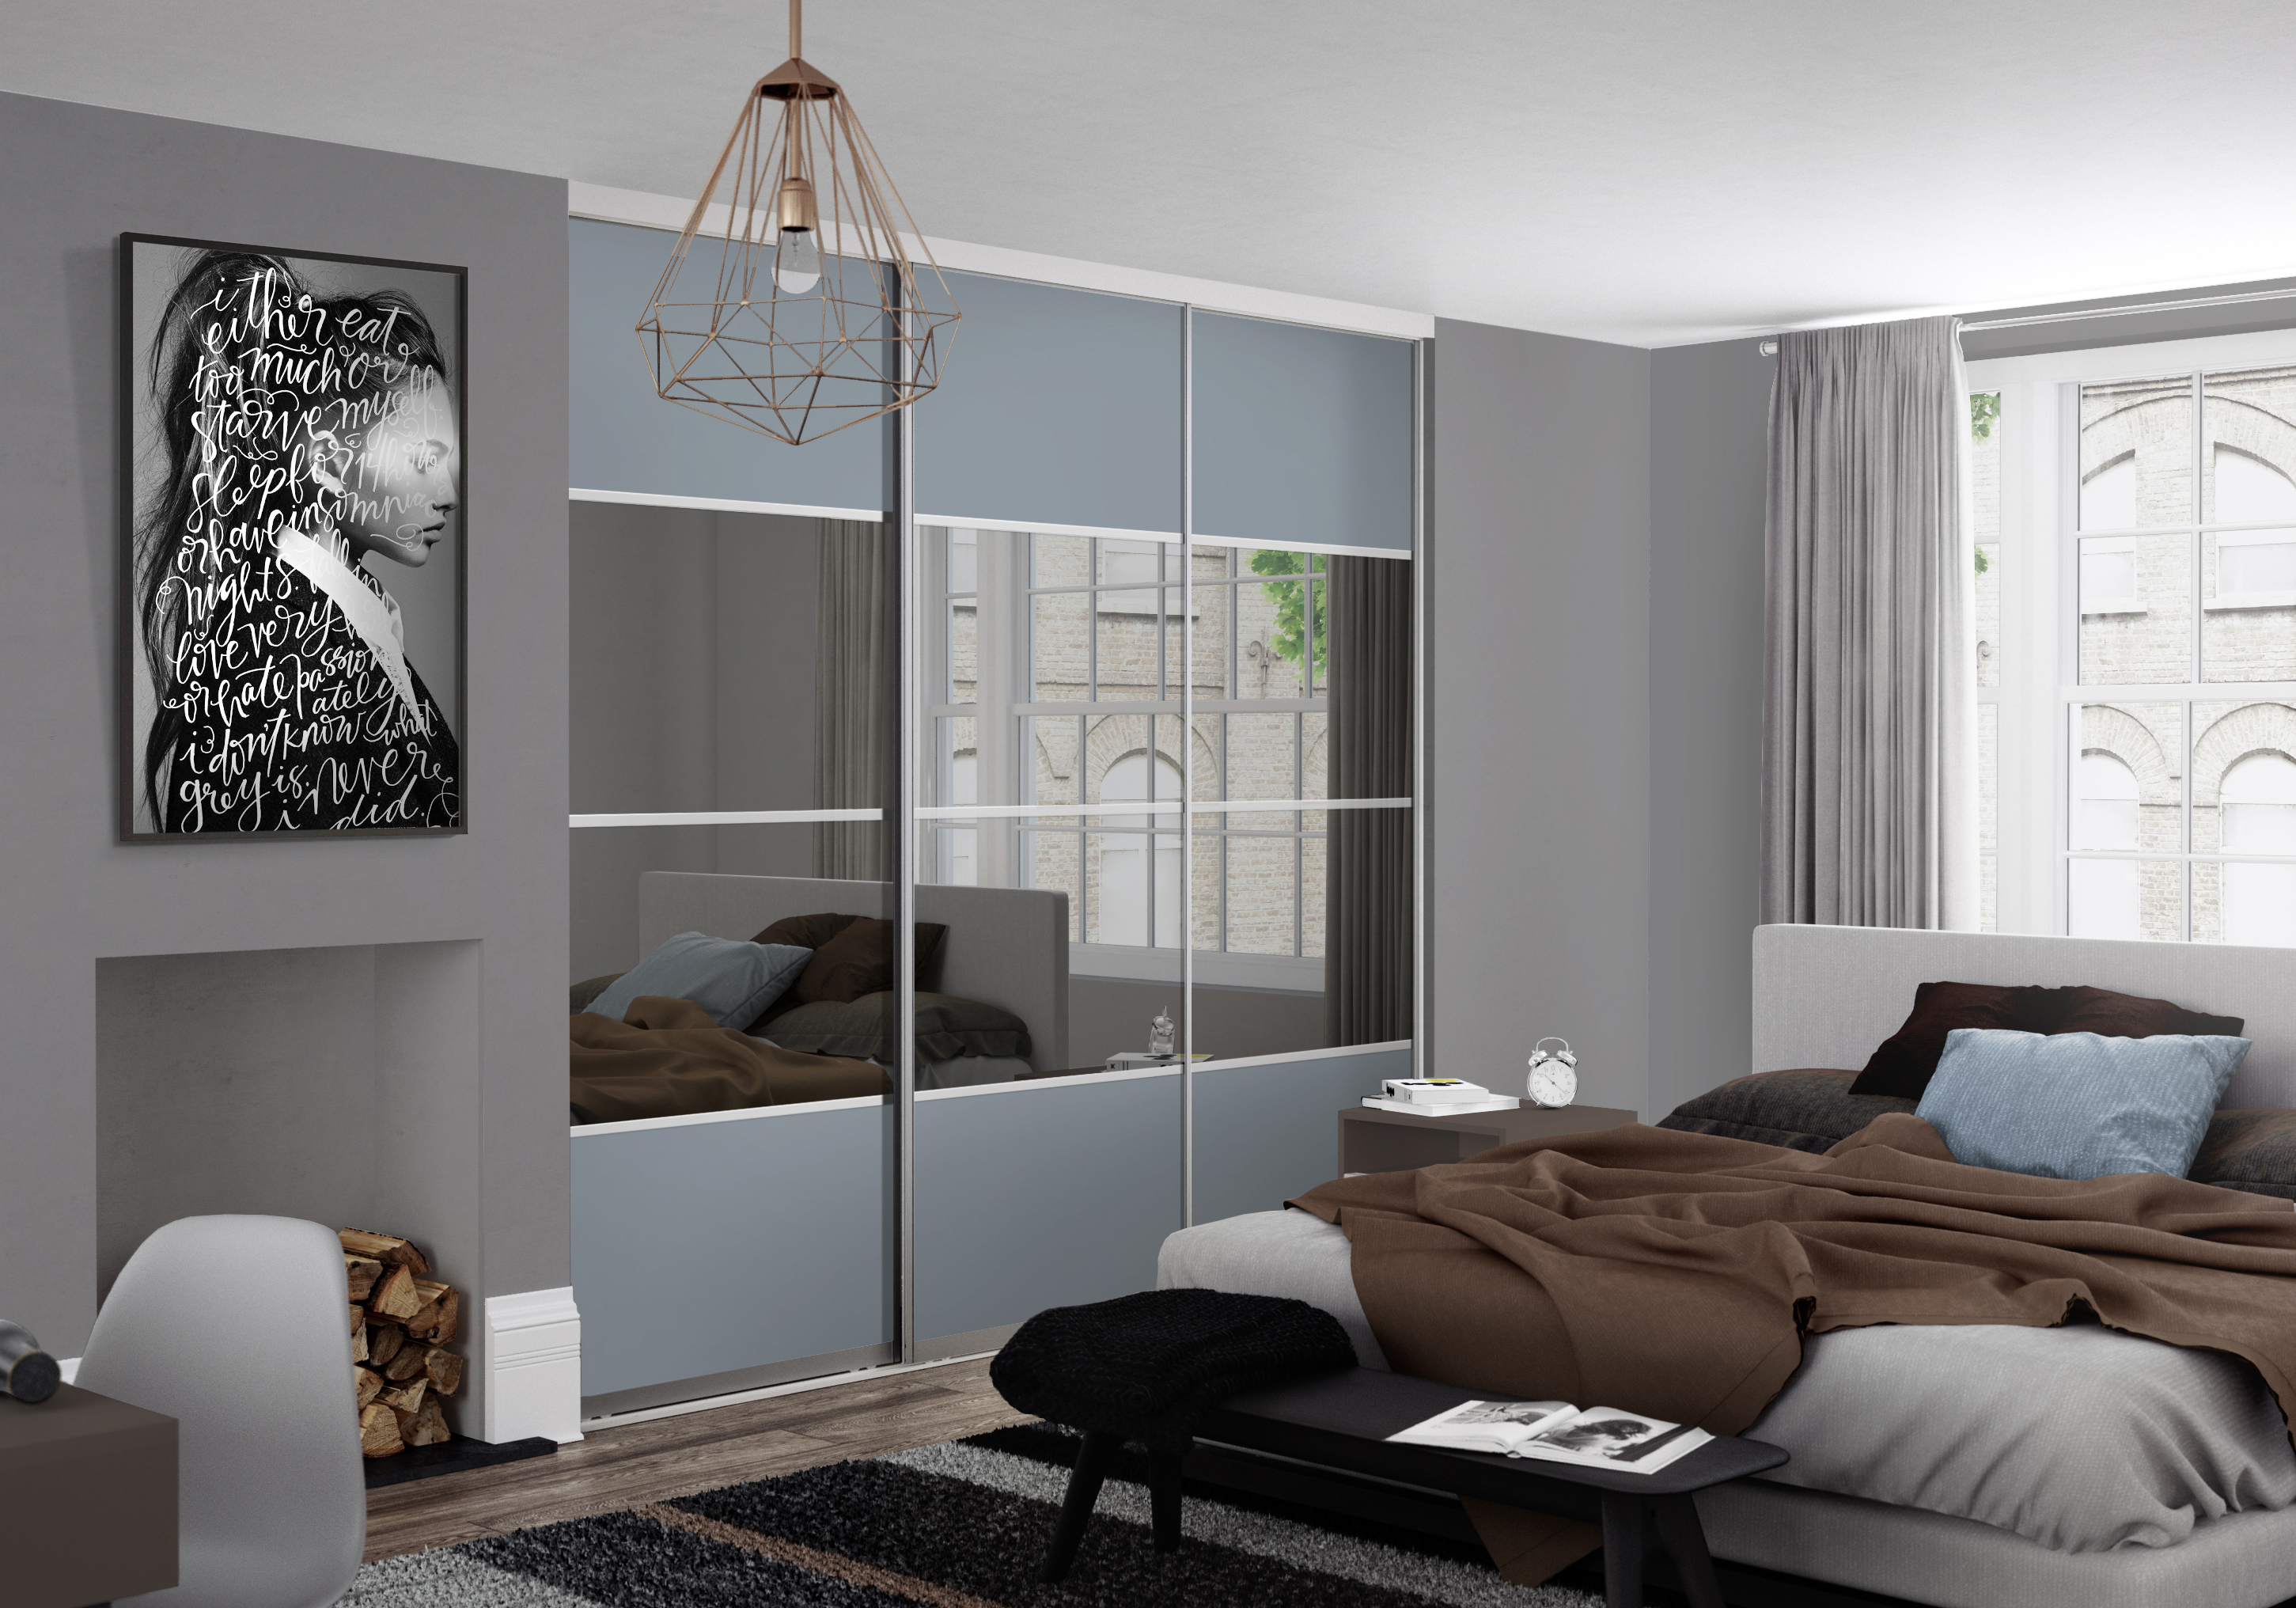 Interior design trends 2017 2018 wardrobe trends spaceslide for Bedroom designs latest 2018